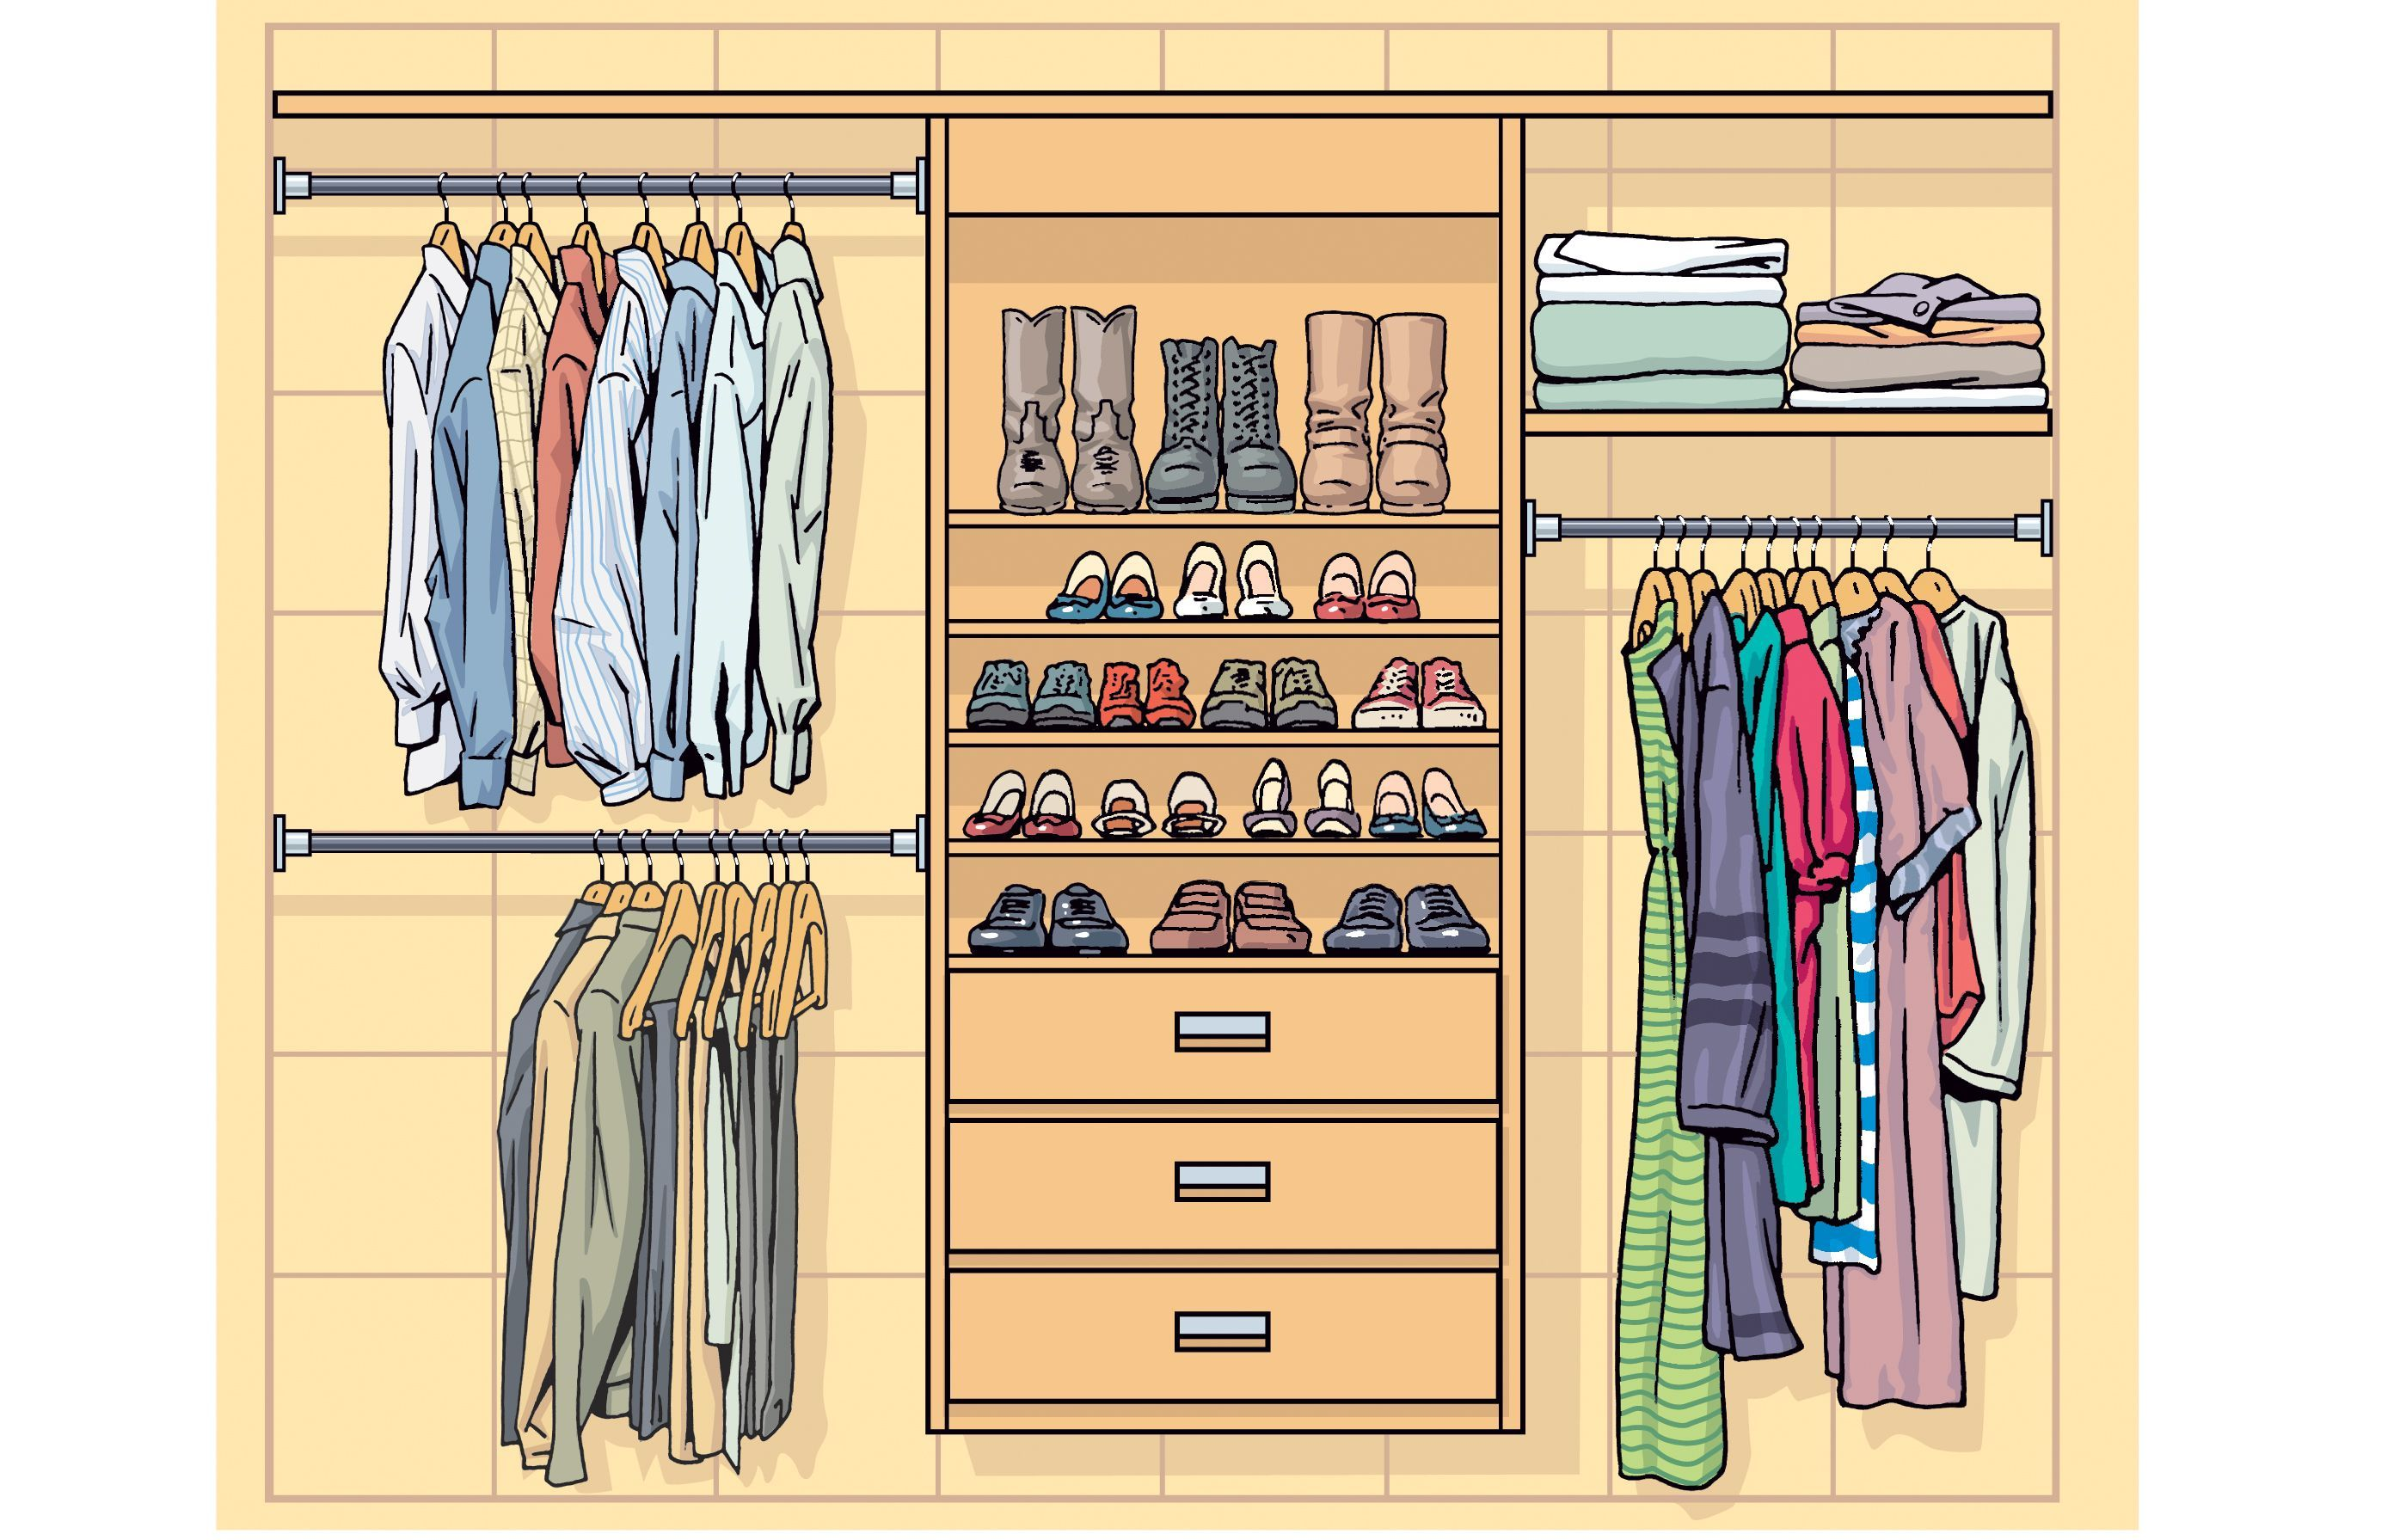 The Ideal Reach In Closet We Re Not Talking Walk Ins Here Is 6 To 8 Feet Wide And 24 To 30 Inches Deep Standard Dou Closet Remodel Closet Layout Closet Redo